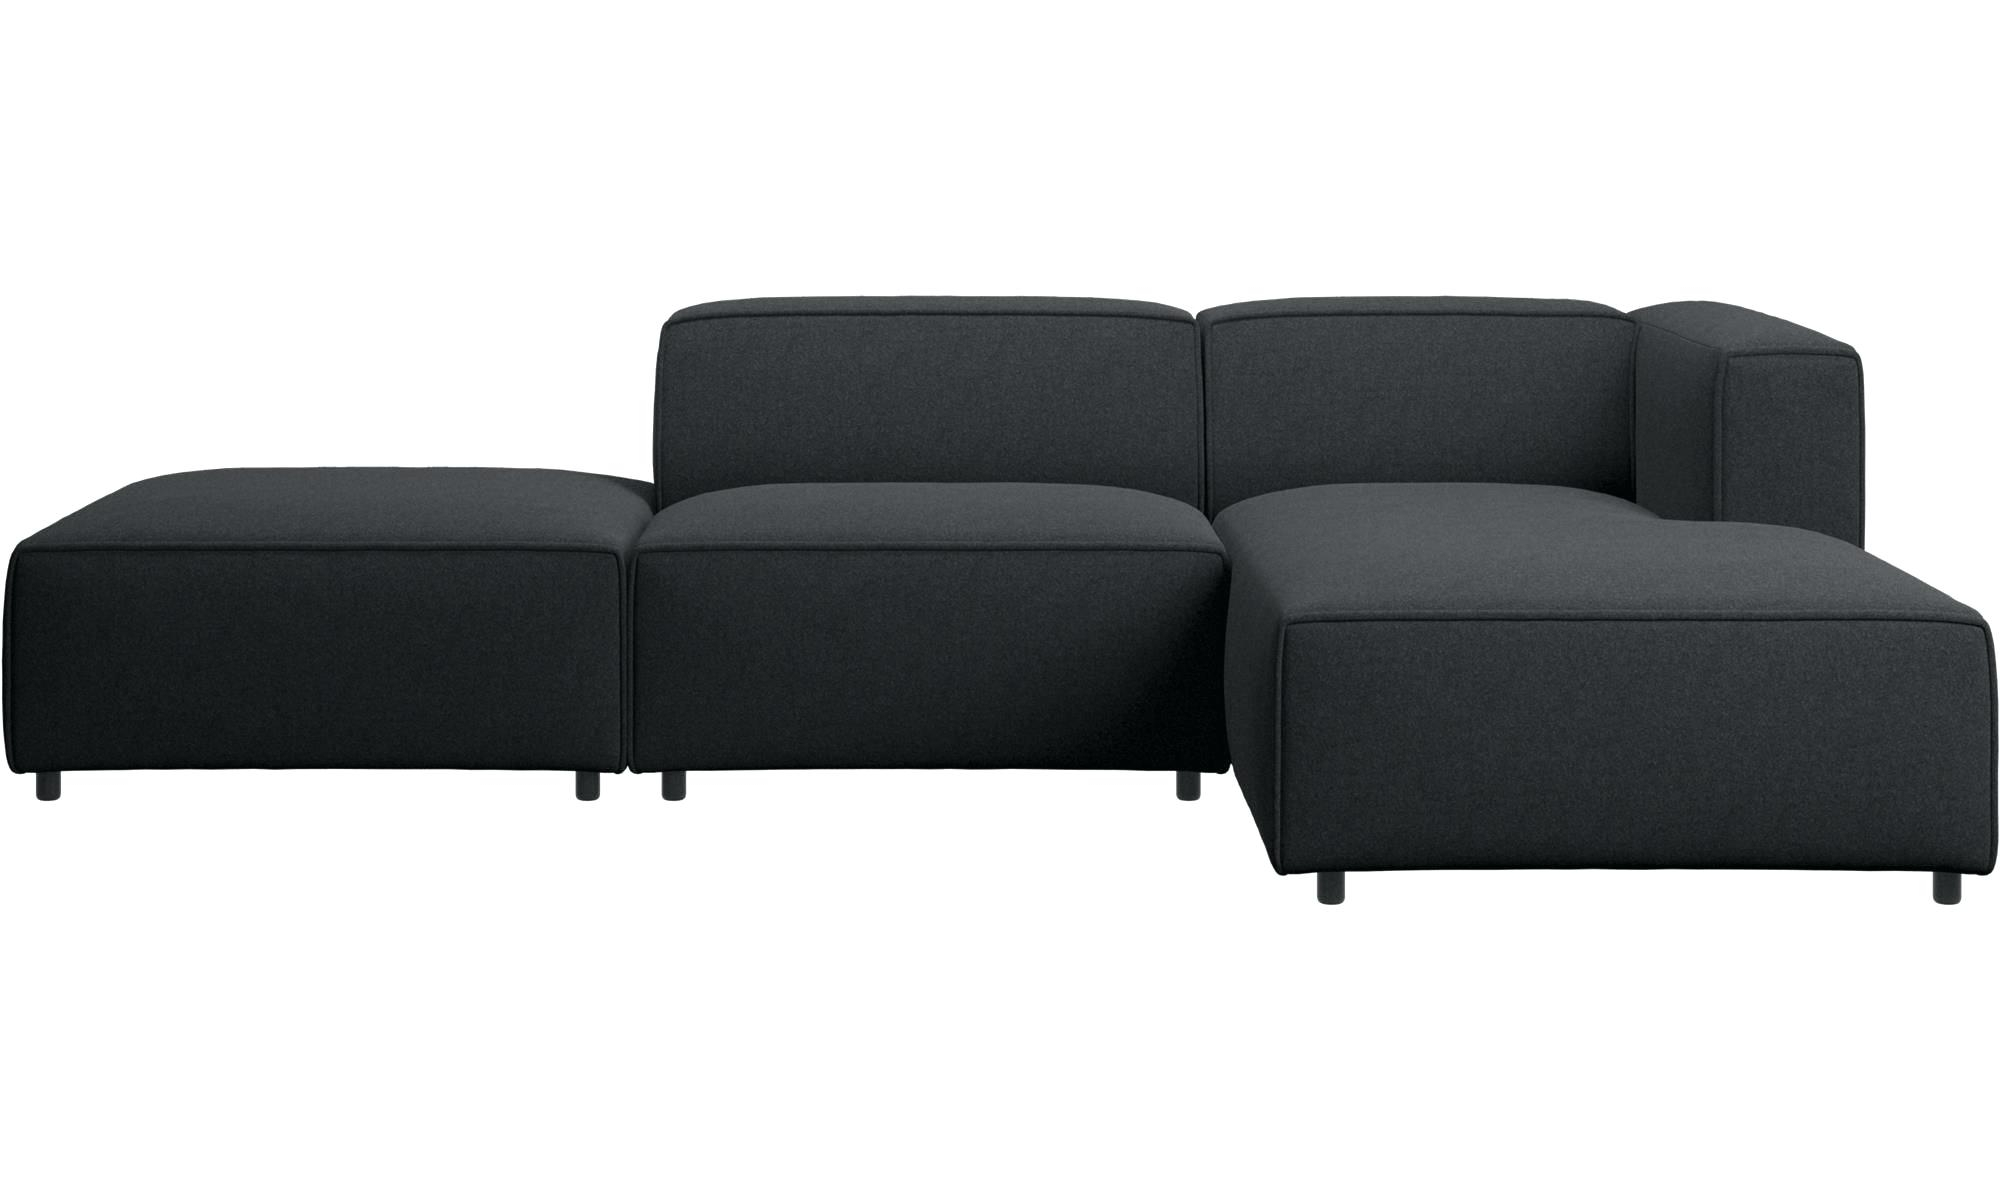 Trendy Varossa Chaise Lounge Recliner Chair Sofabeds Within Chaise Lounge Sofa – Javi (View 12 of 15)